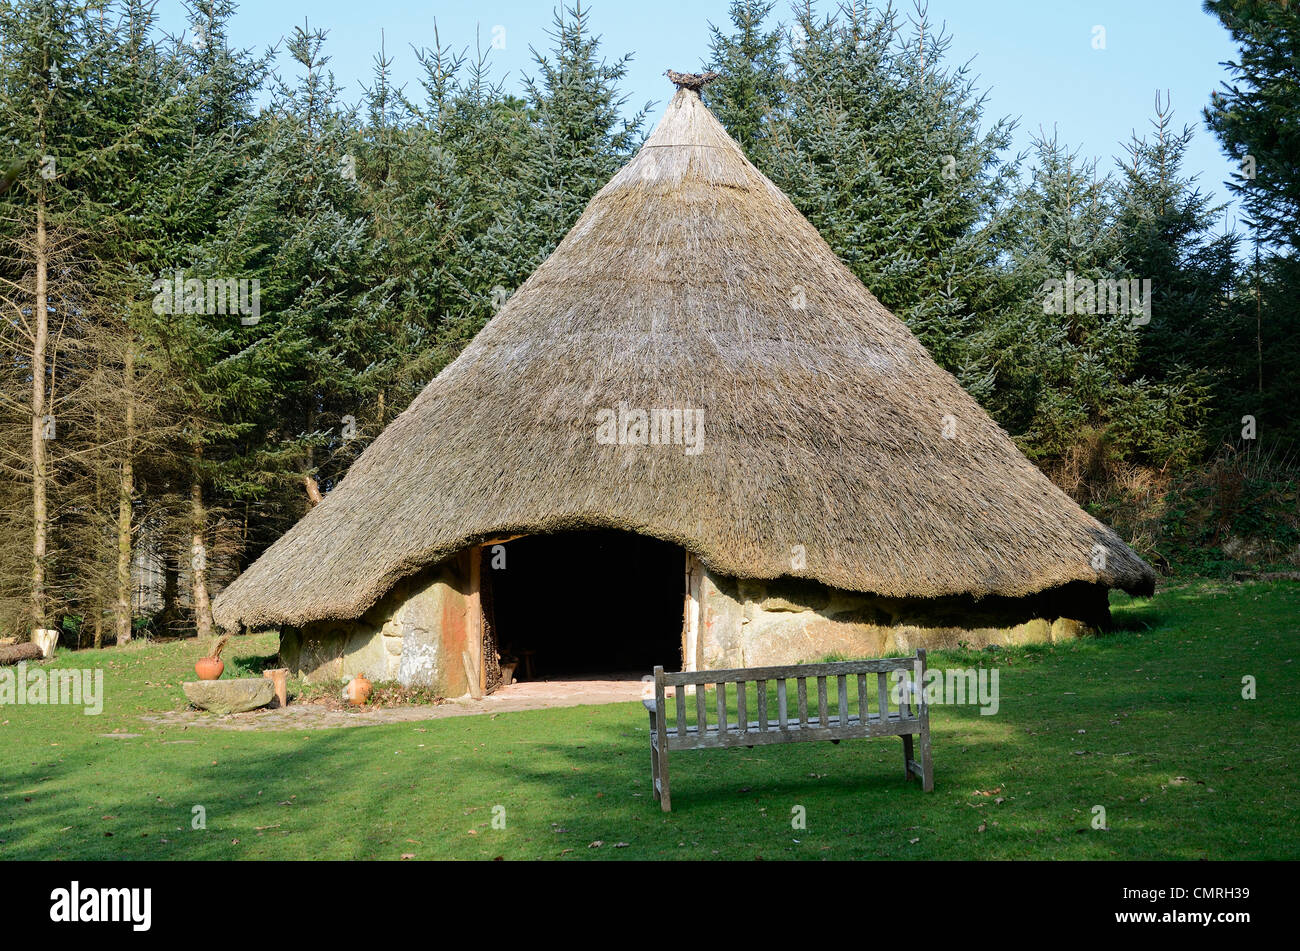 A replica of a bronze age roundhouse at bodrifty near penzance in cornwall, uk - Stock Image